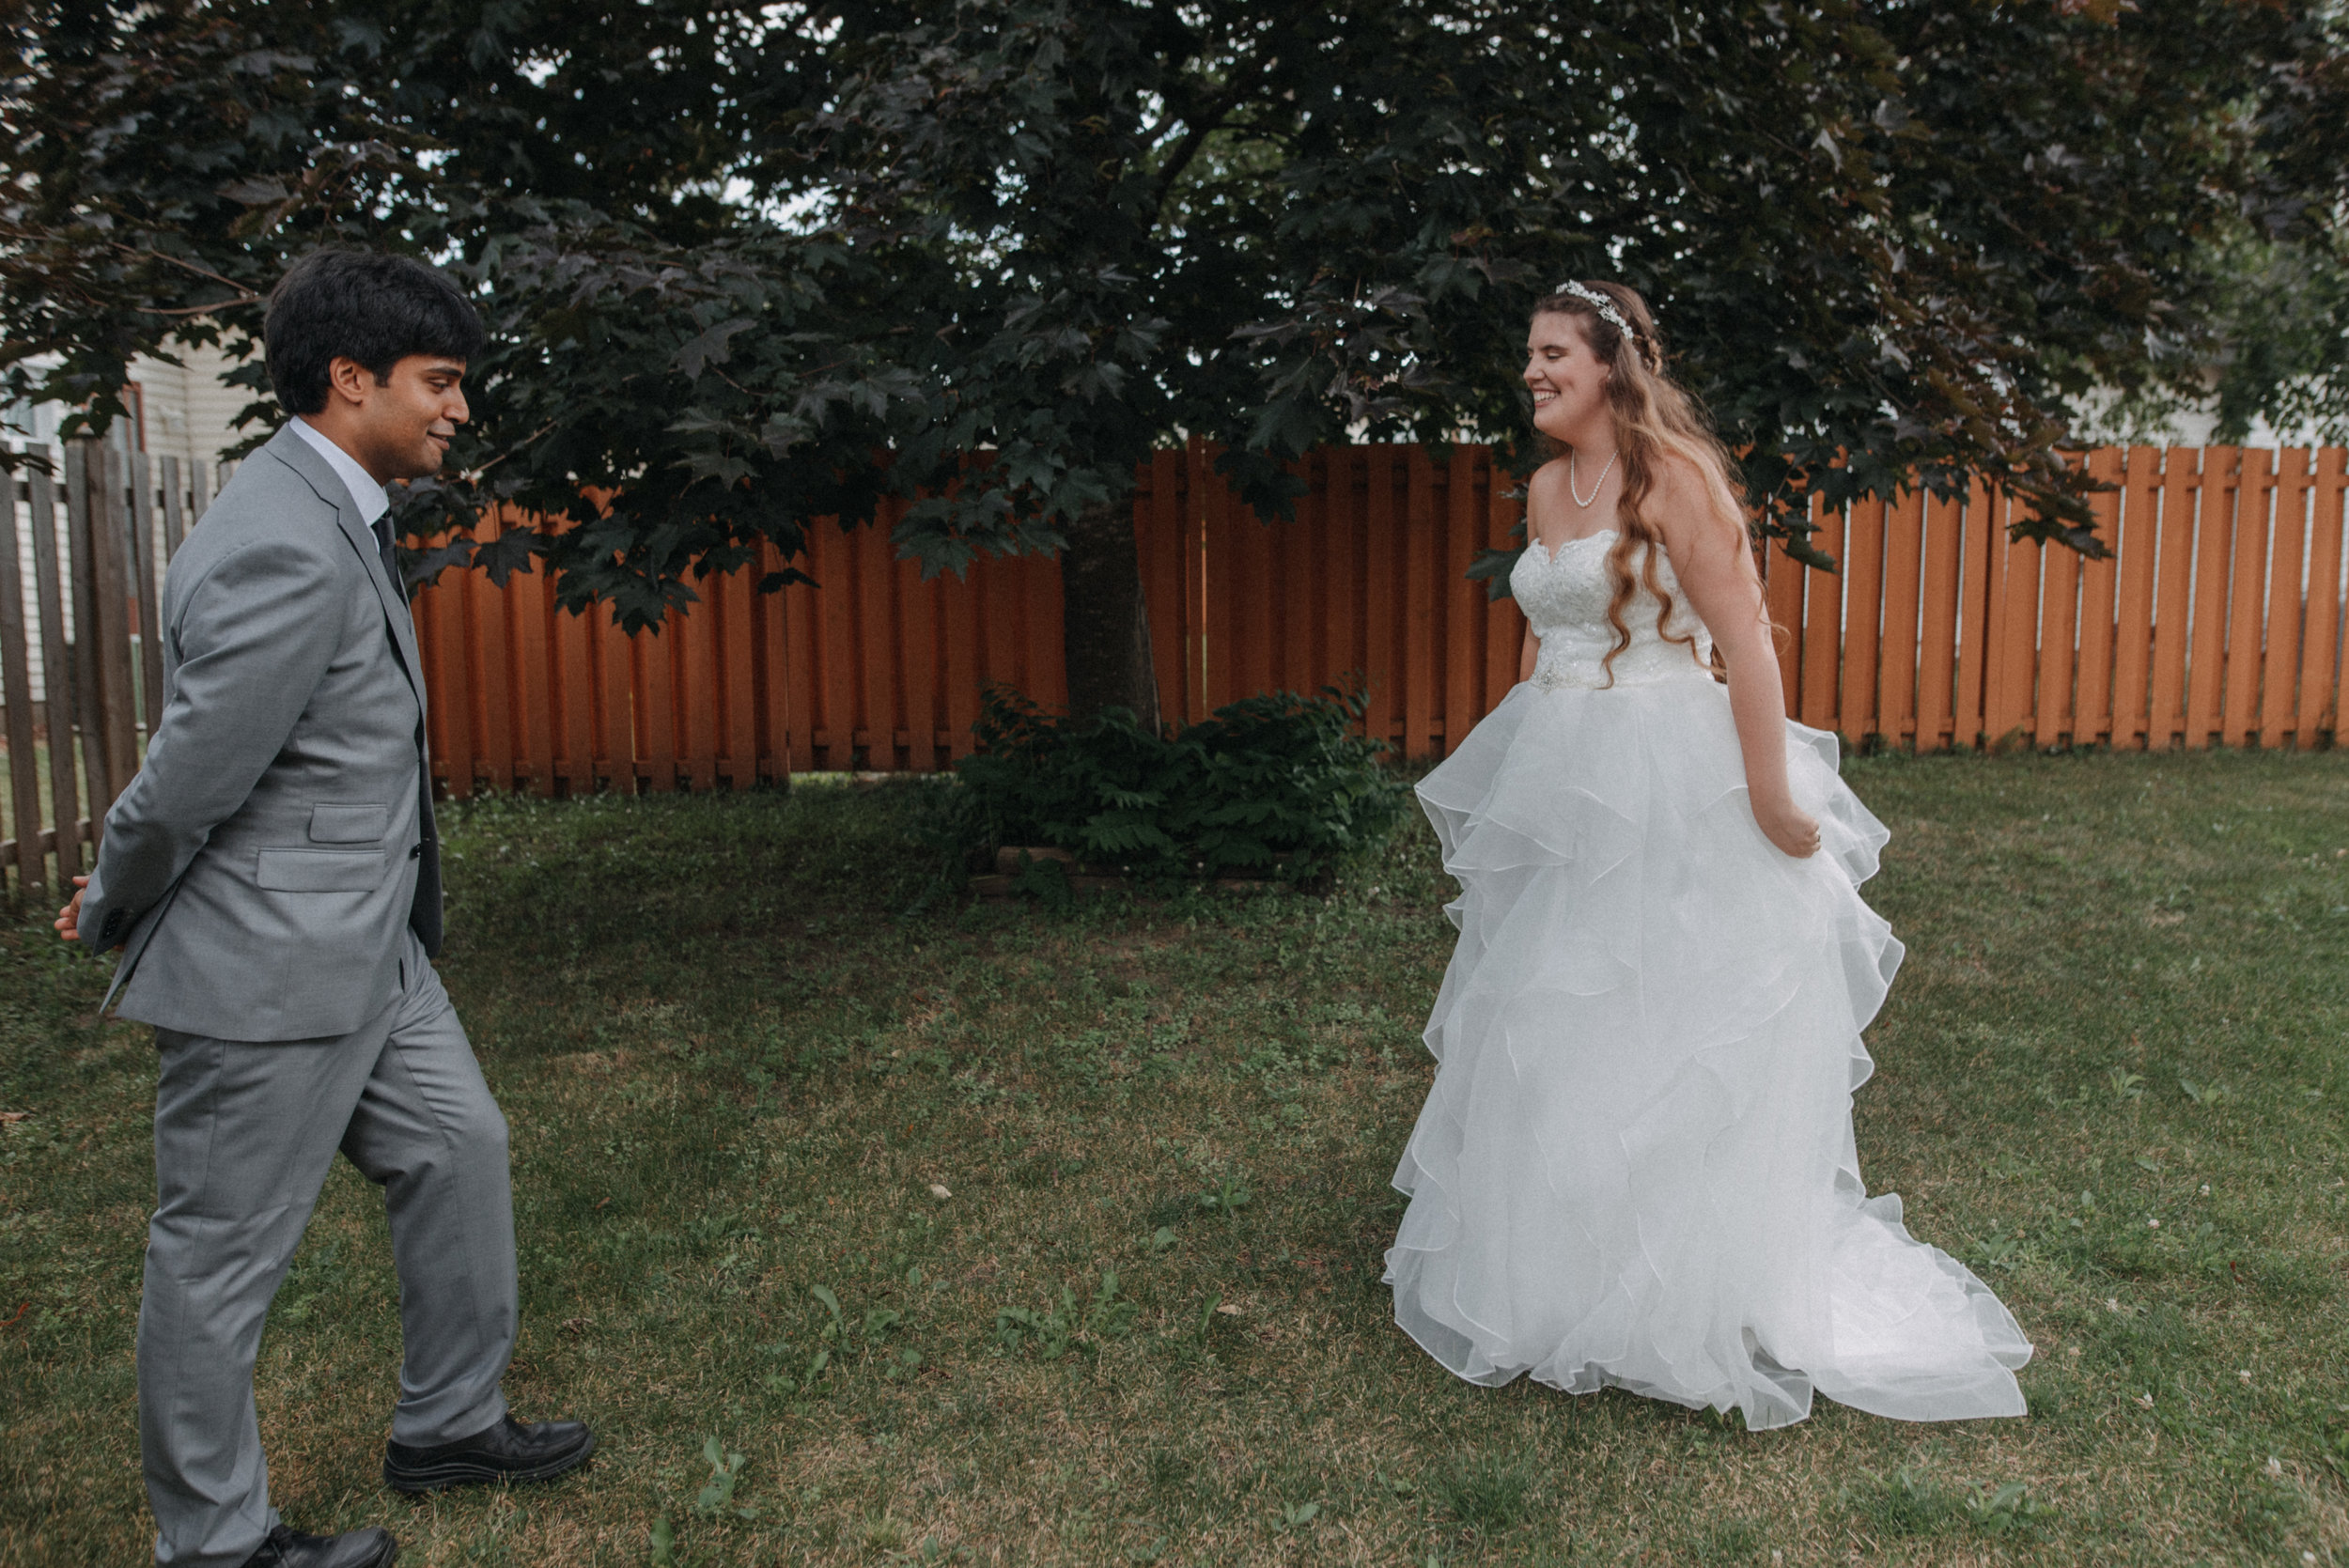 photographe_gatineau_mariage_wedding_photographer_ottawa_candid_lifestyle_documentary_natural_family_familly (29).jpg